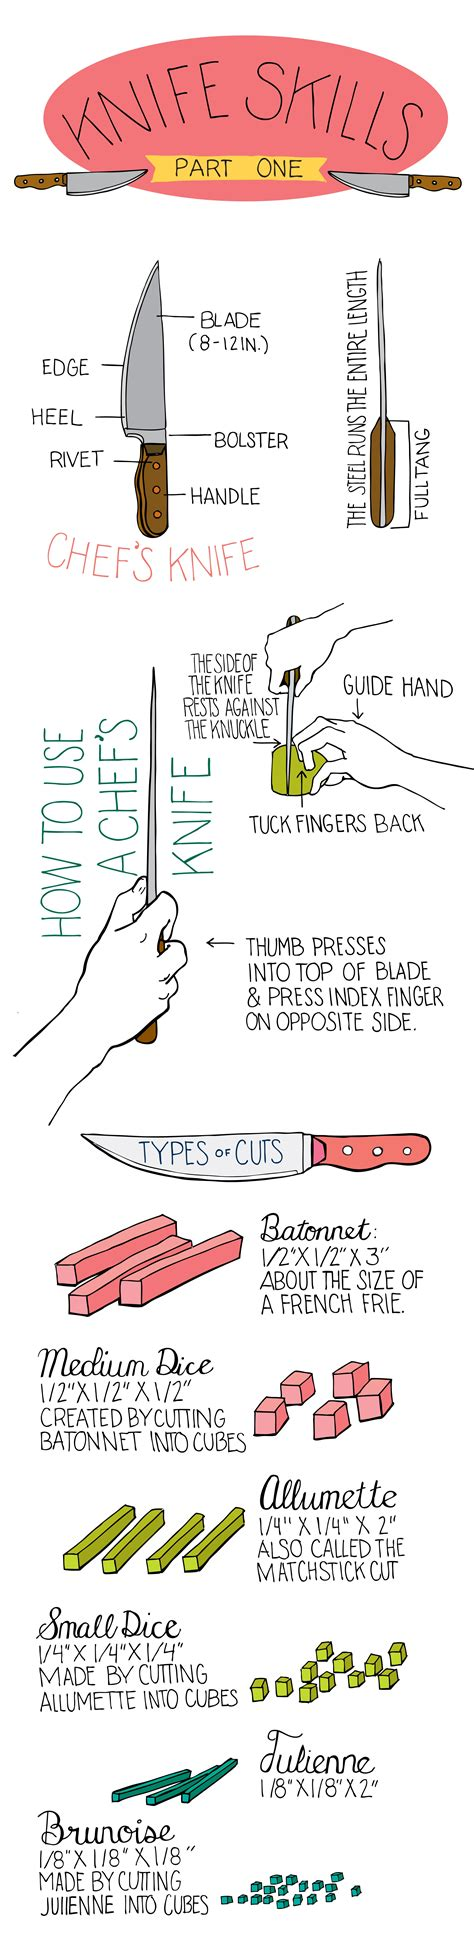 how to sharpen your knife skills in the kitchen and knife safety tips how to sharpen your knife skills